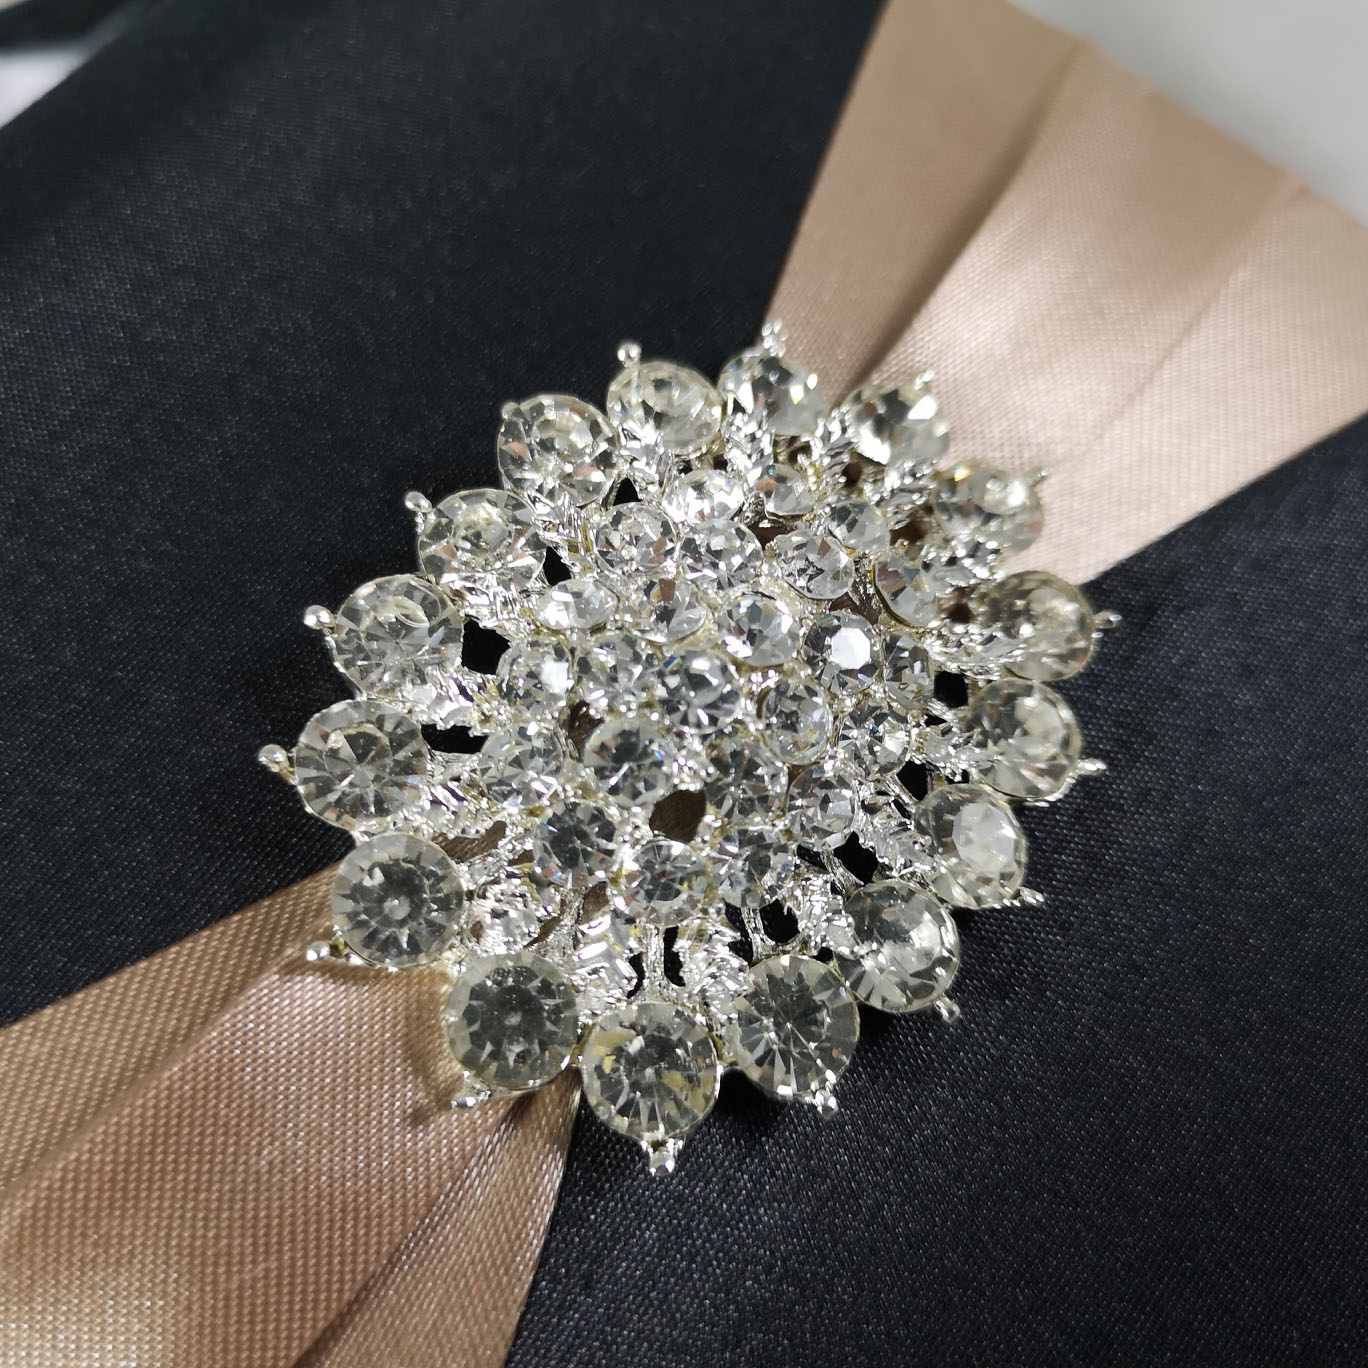 Large diamond brooch